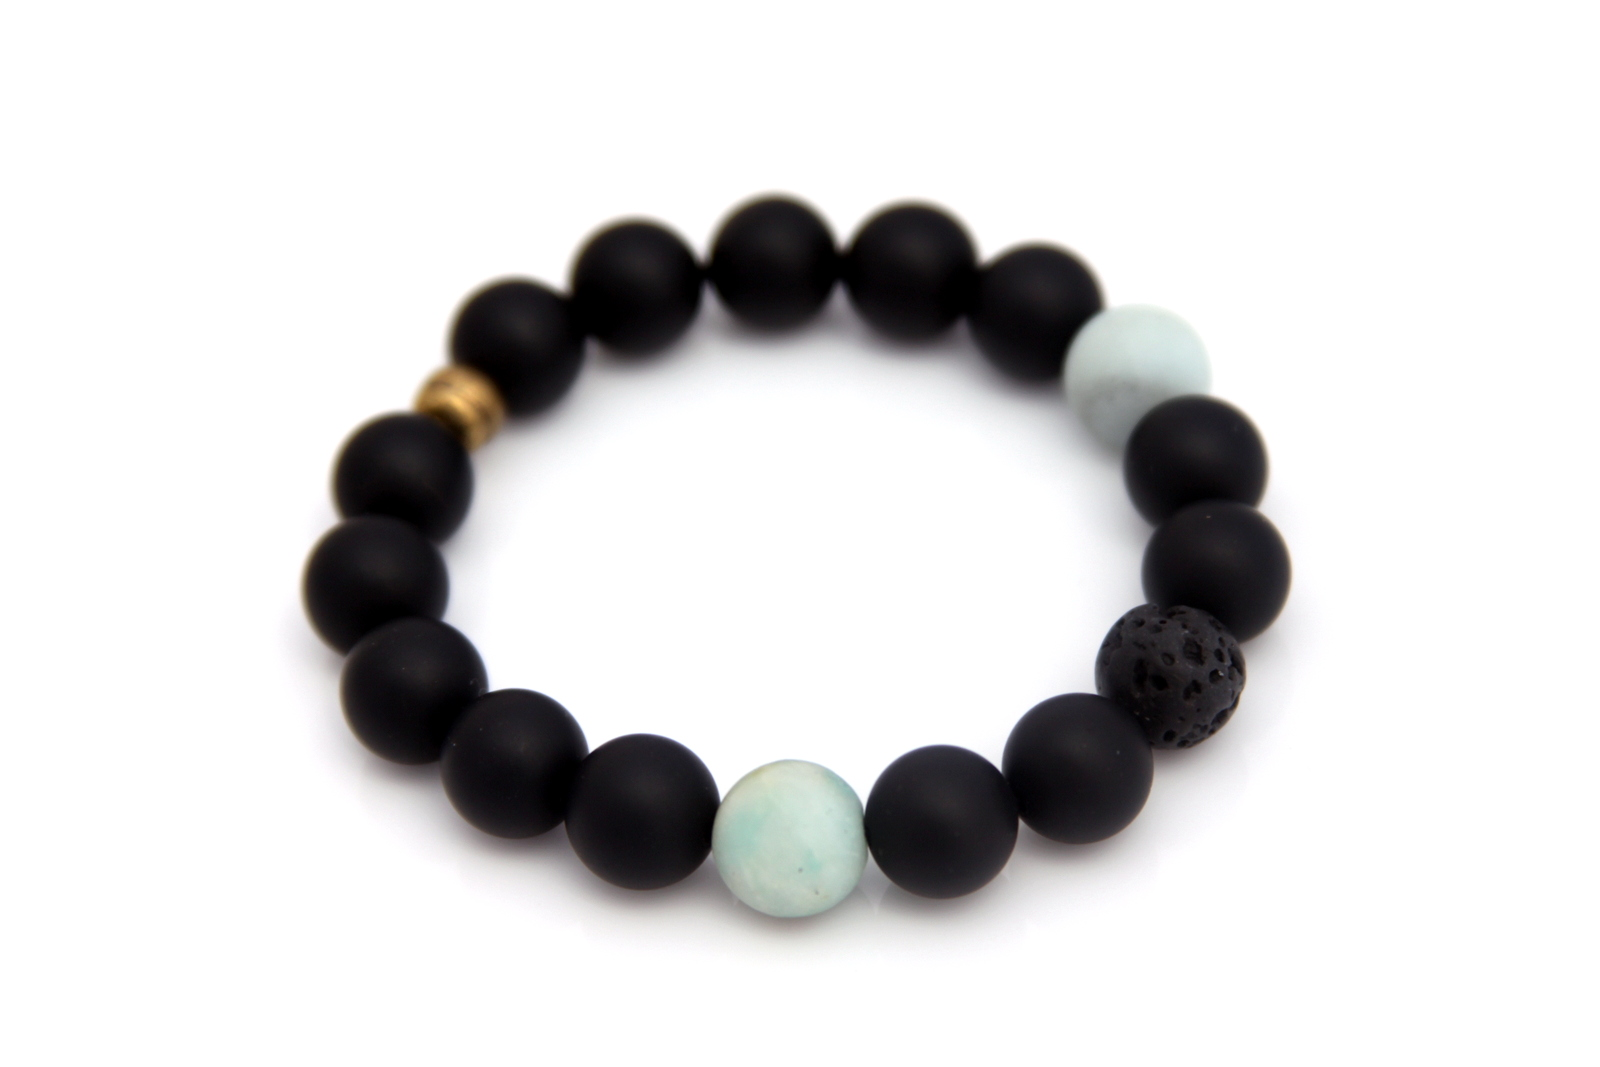 Matte black bead bracelet best bracelet 2018 for Reinforcements stainless steel jewelry